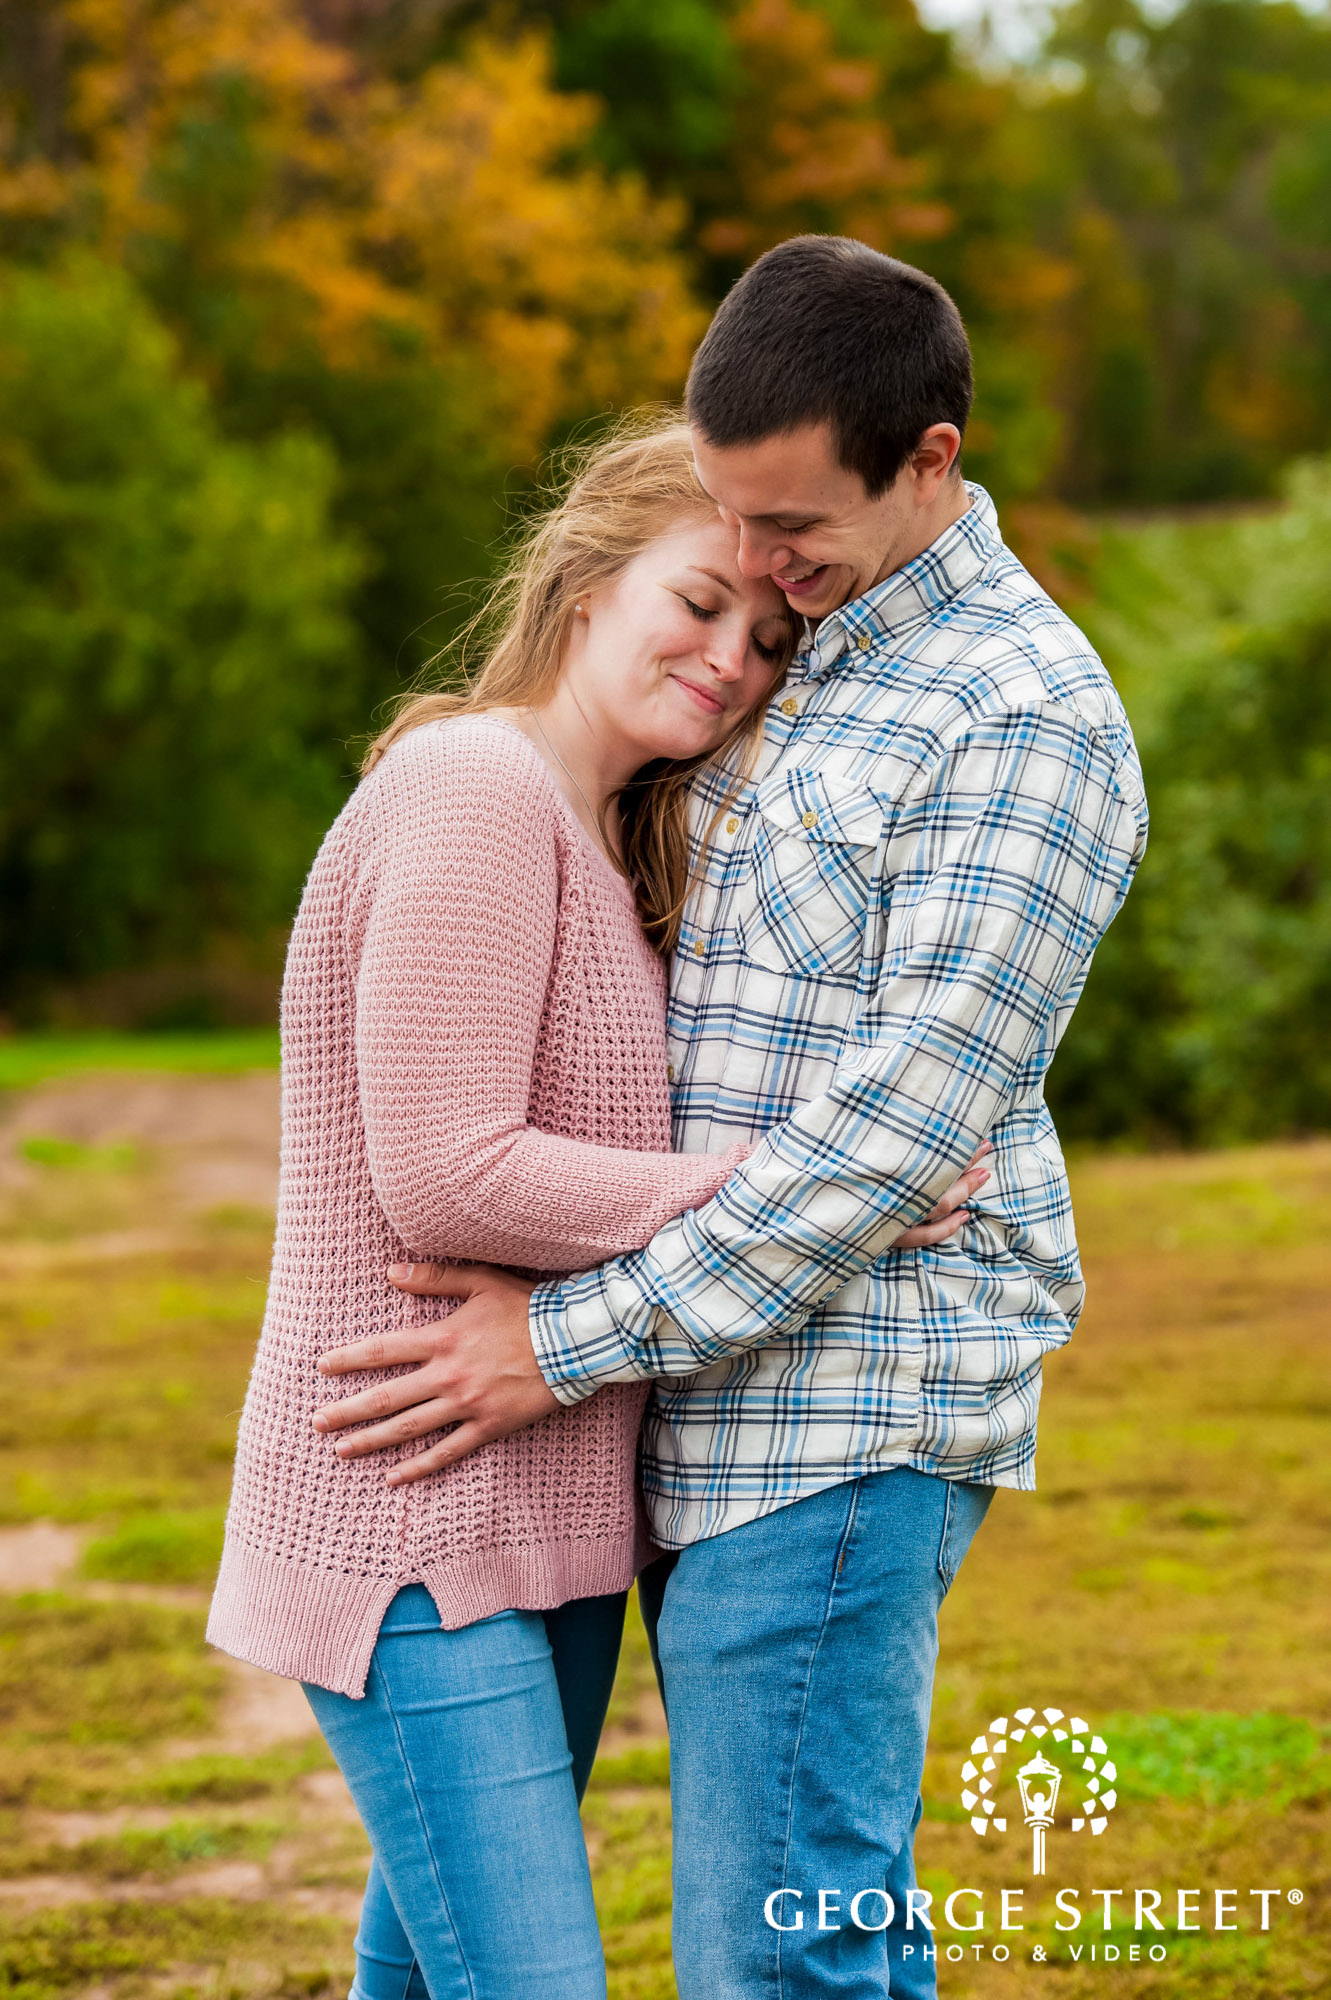 lyman orchards cute greenery sweater hartford engagement photography 2